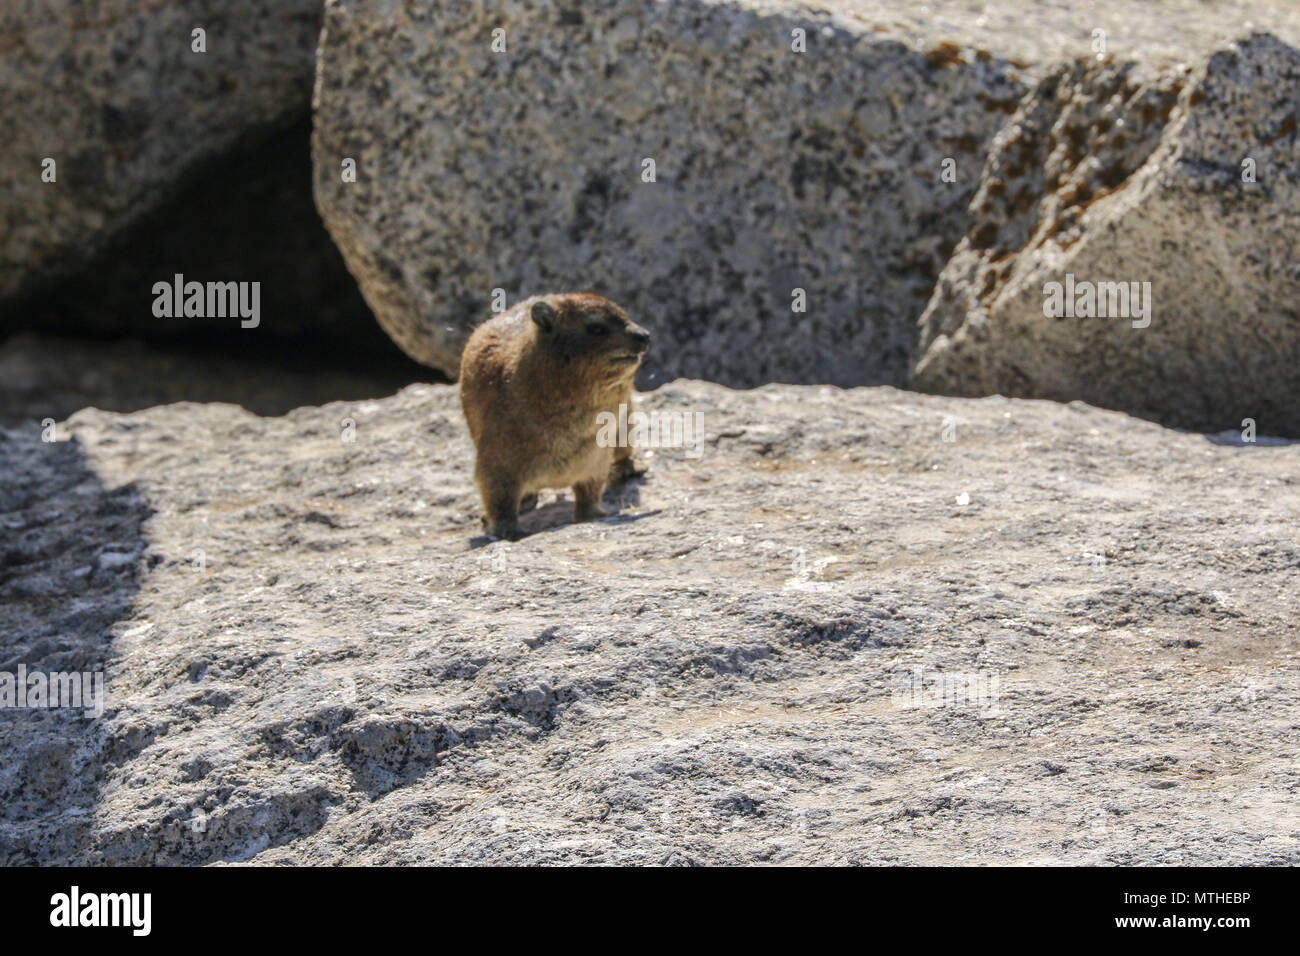 Rock hyrax on granite boulder at boulder beach on the garden route, south africa - Stock Image